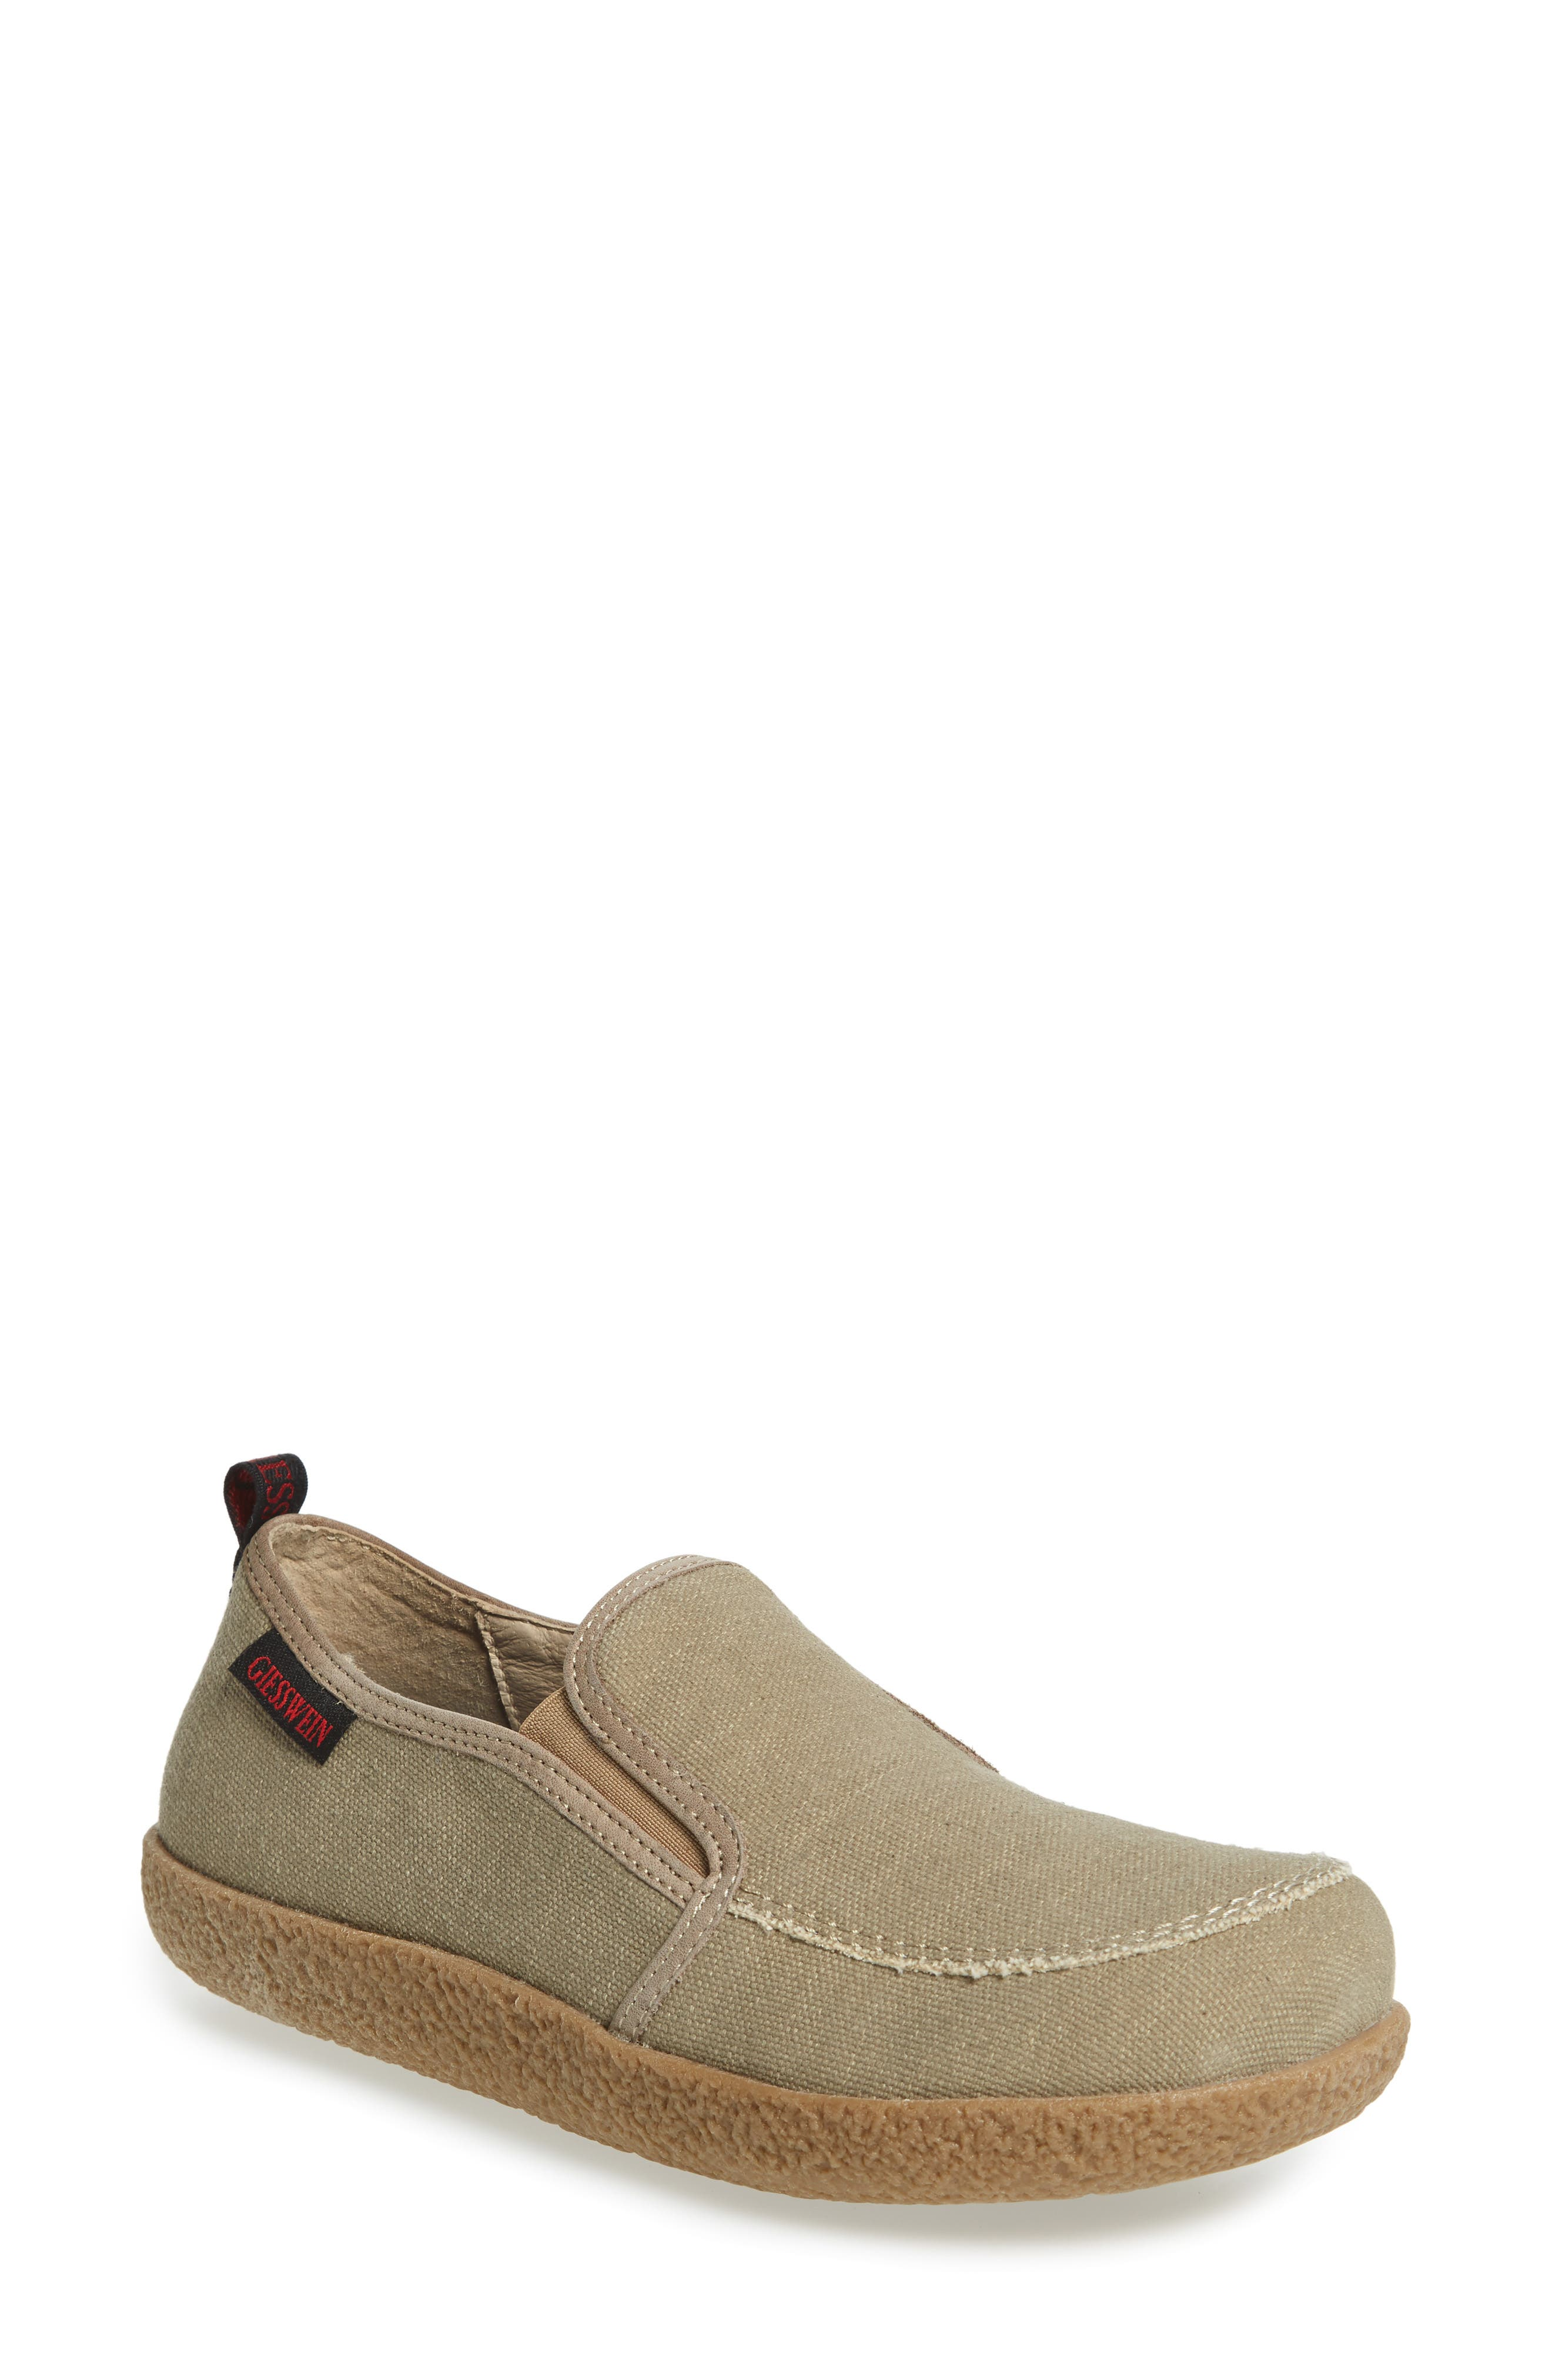 Reith Loafer,                             Main thumbnail 1, color,                             Sesame Leather